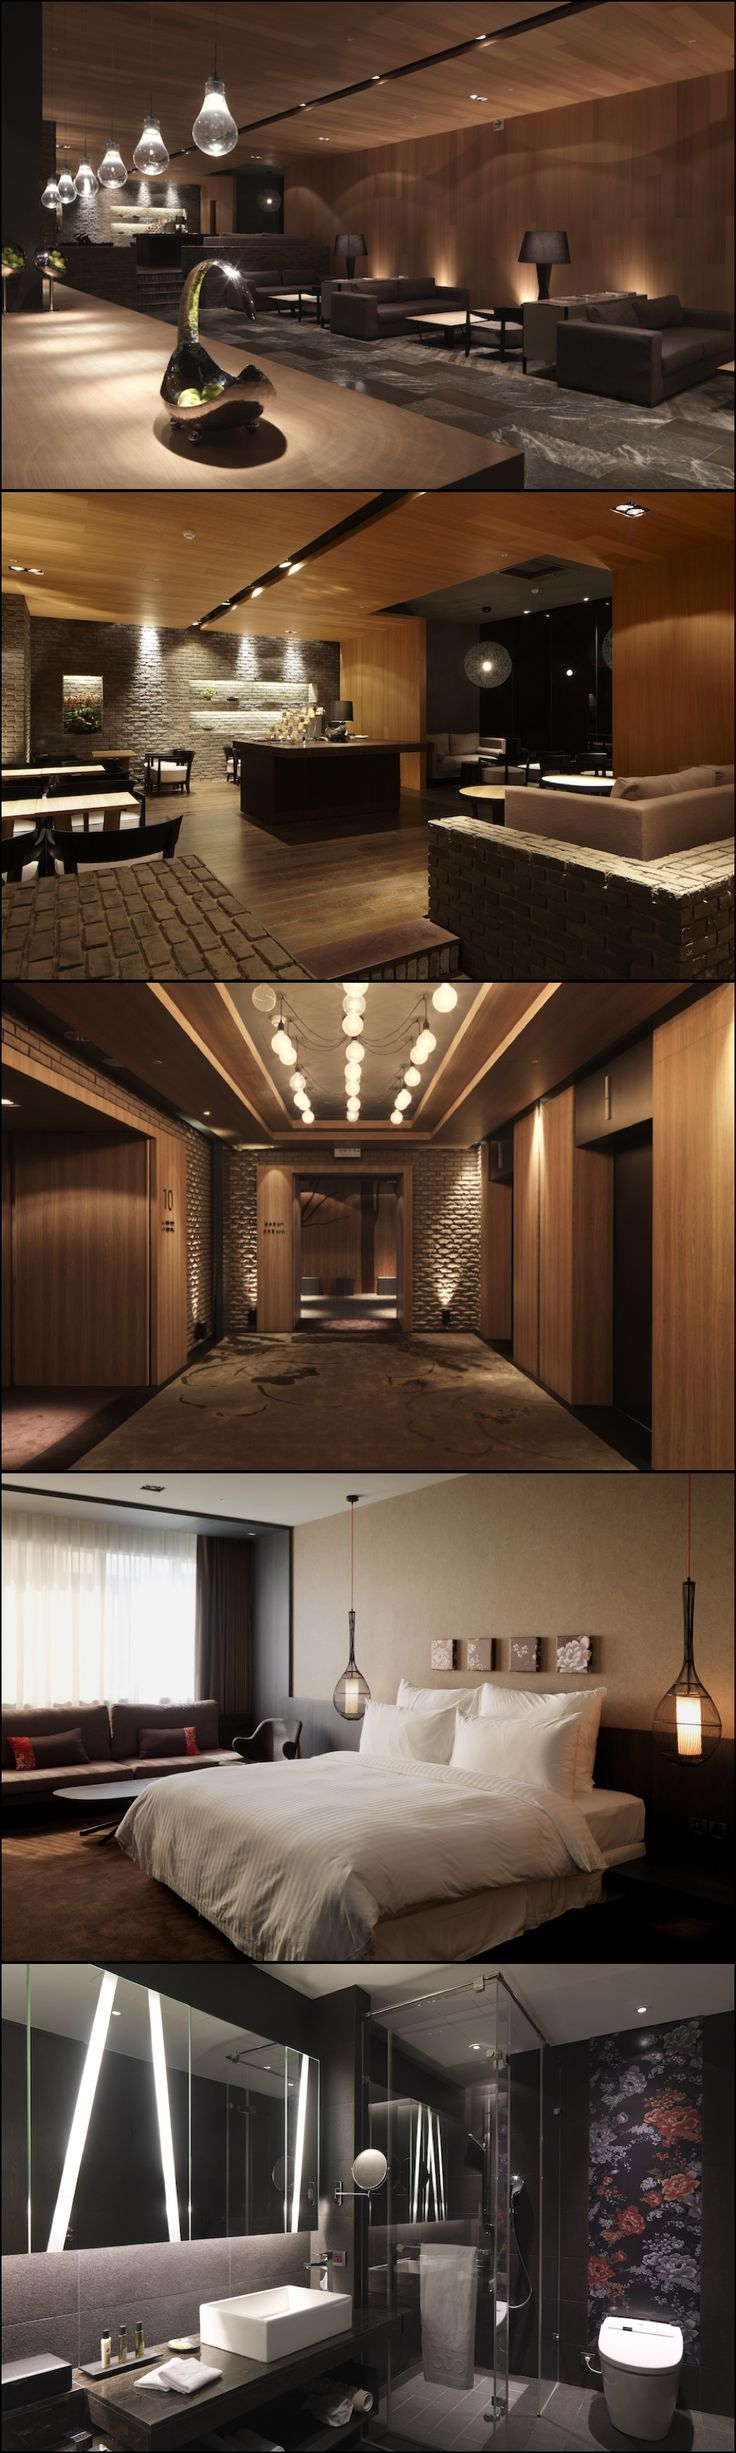 http://www.urdesign.it/index.php/2012/10/29/hotel-dua-kaohsiung-taiwan-koan-design/